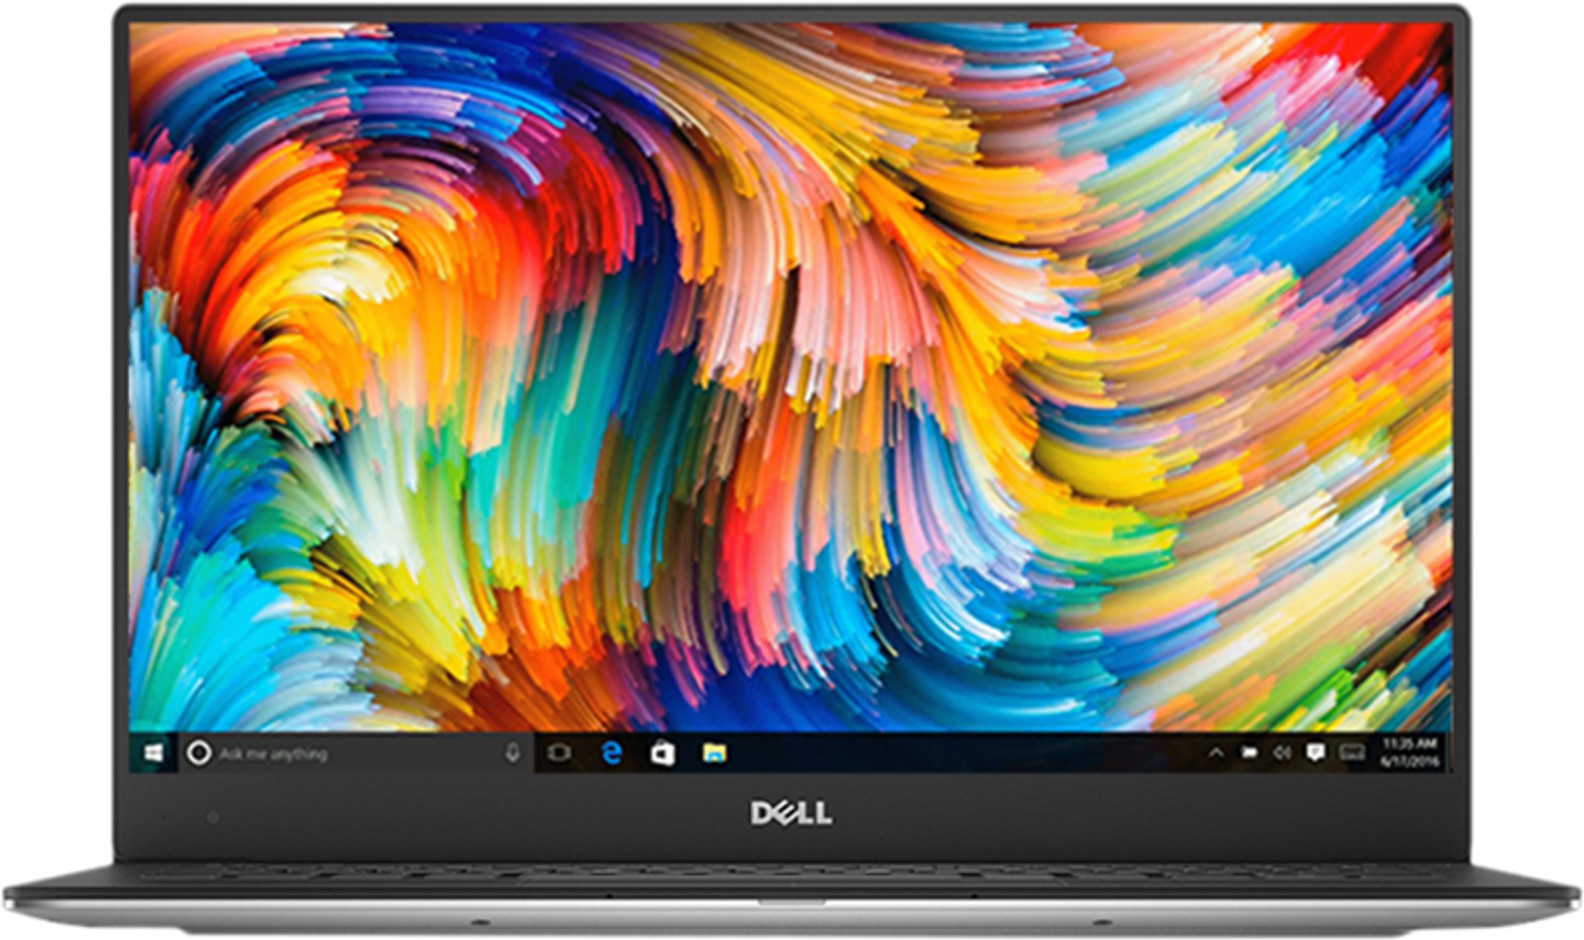 Dell XPS 13 Core i5 7th Gen 9360 Thin and Light Laptop Image